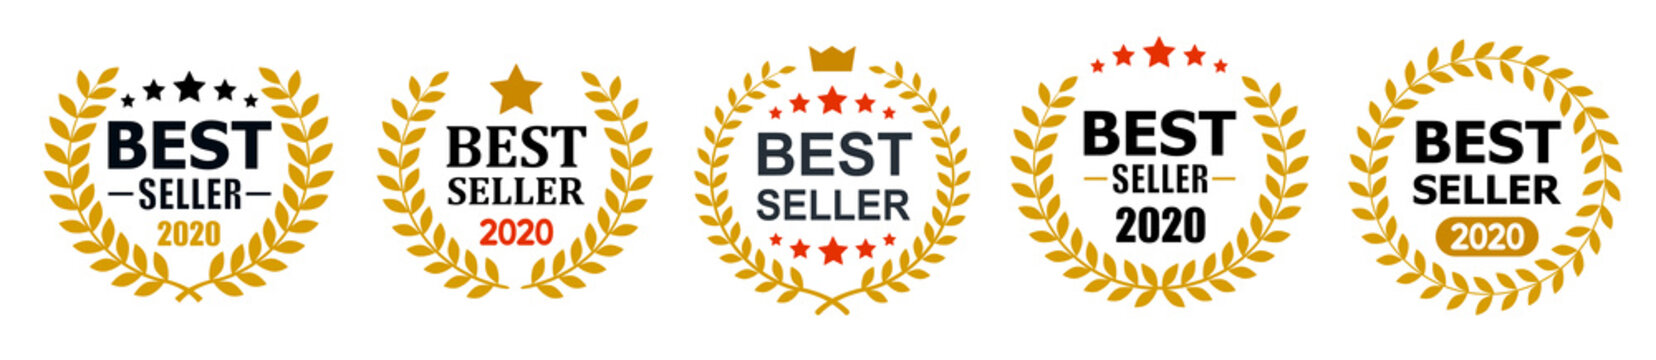 Set best seller icon design with laurel, best seller badge logo isolated - stock vector